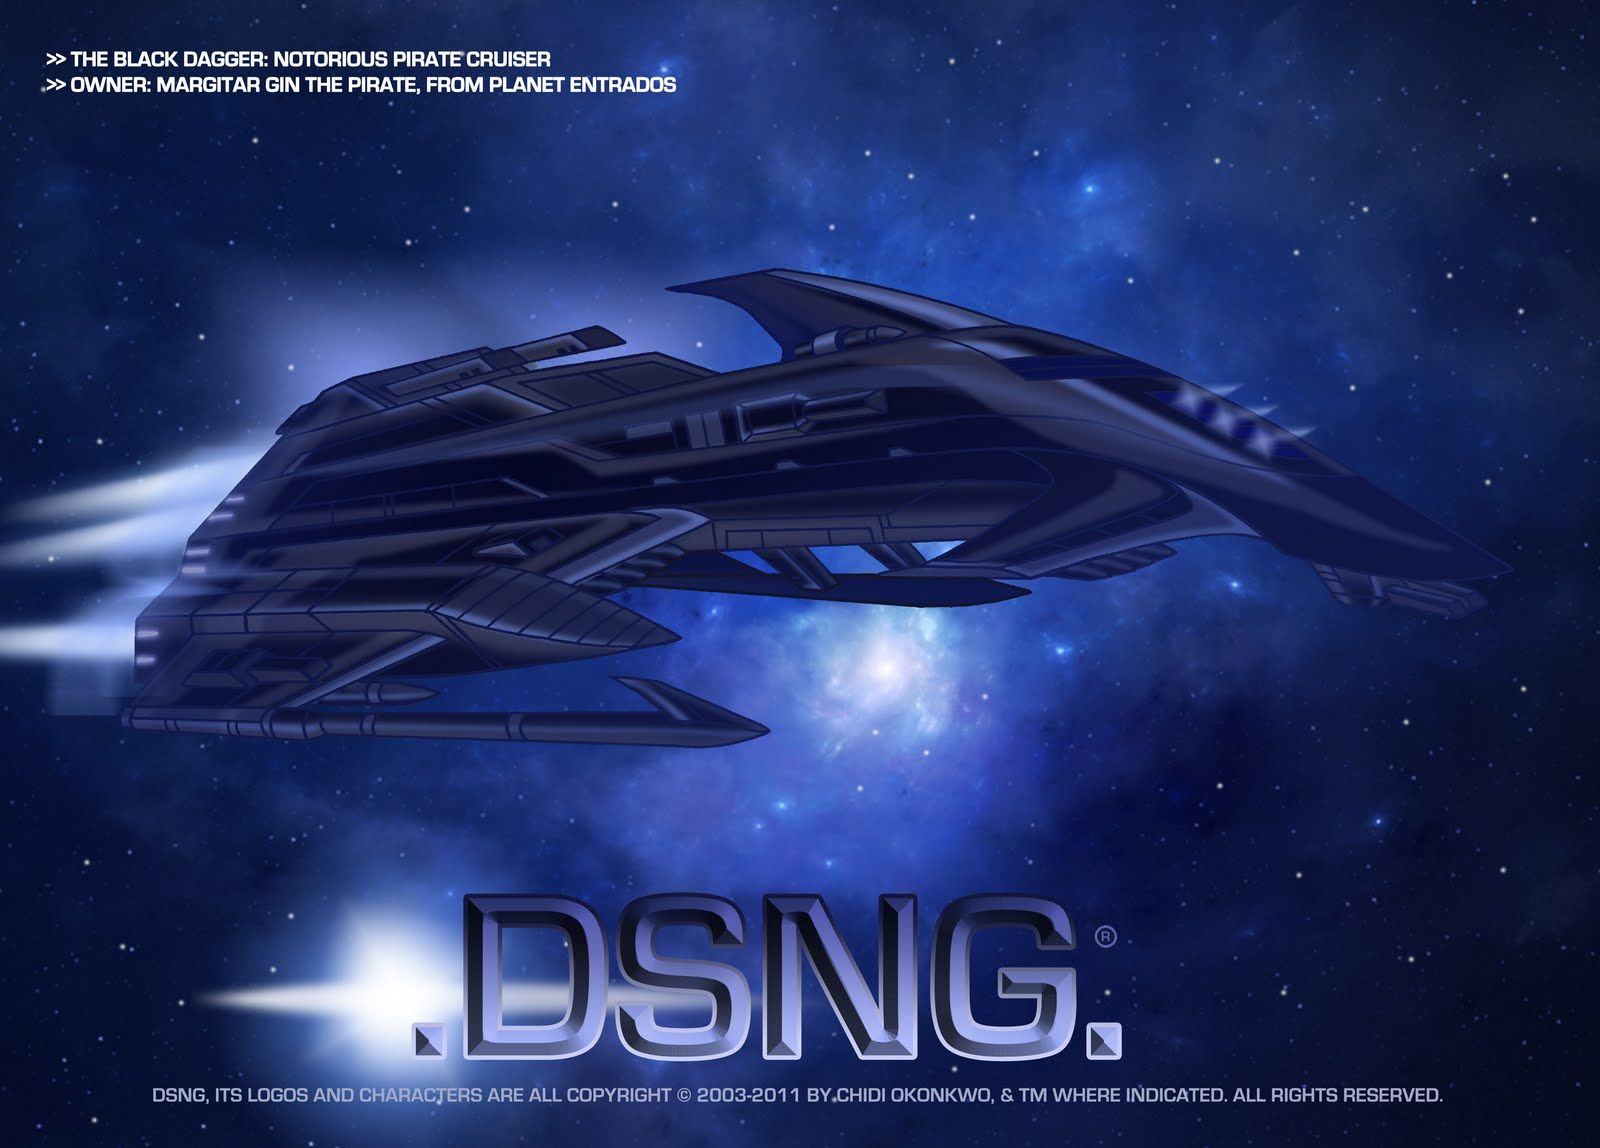 DSNGS SCI FI MEGAVERSE  SPACECRAFTS  SPACESHIPS AND STEAMPUNK